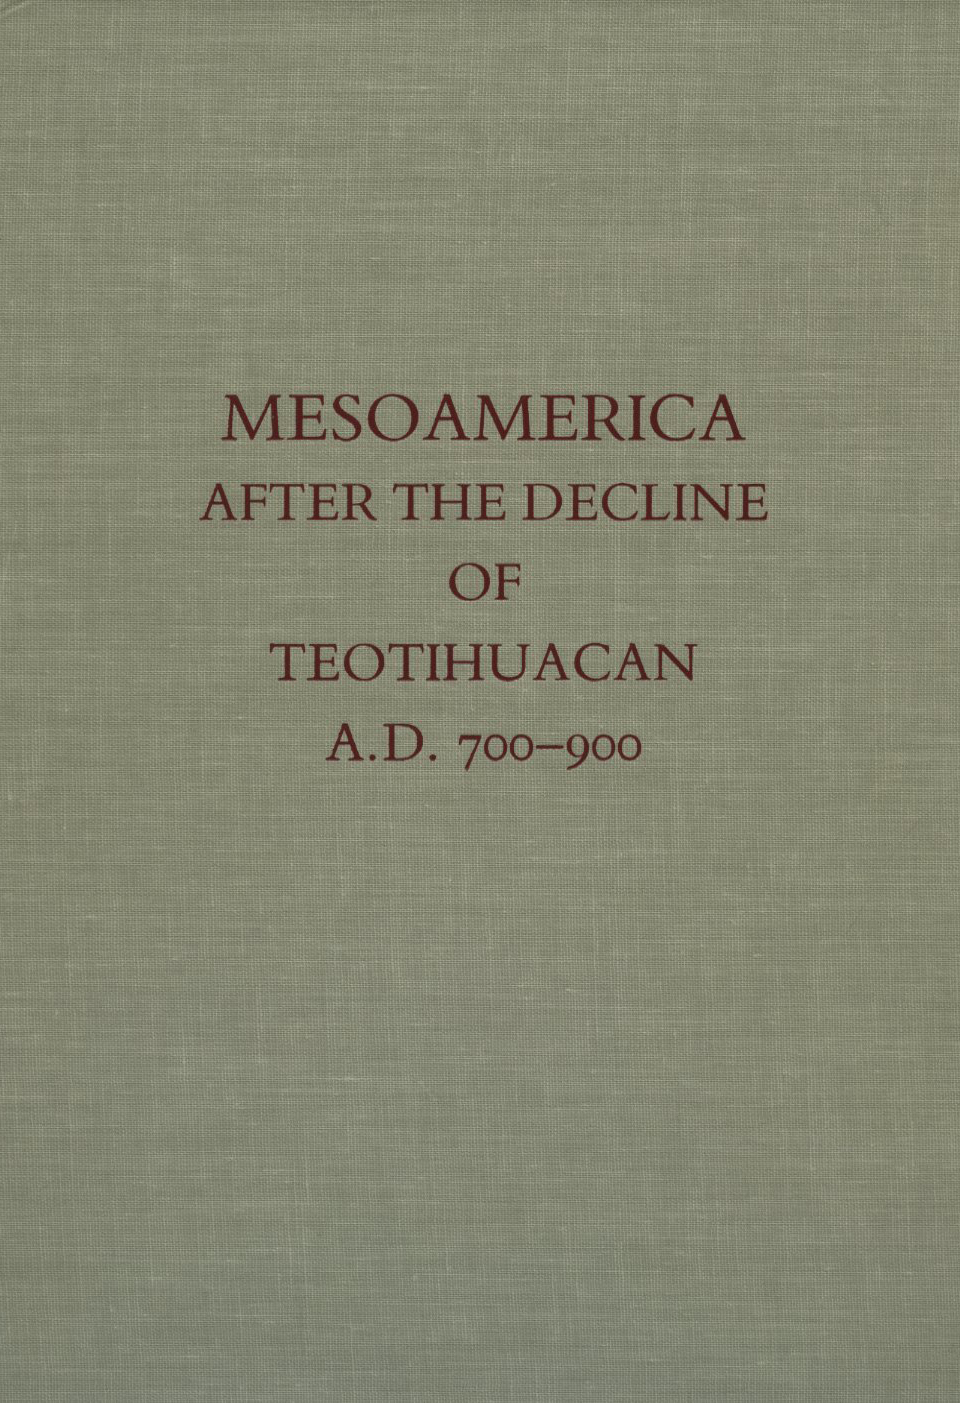 Mesoamerica after the Decline of Teotihuacan, A.D. 700–900